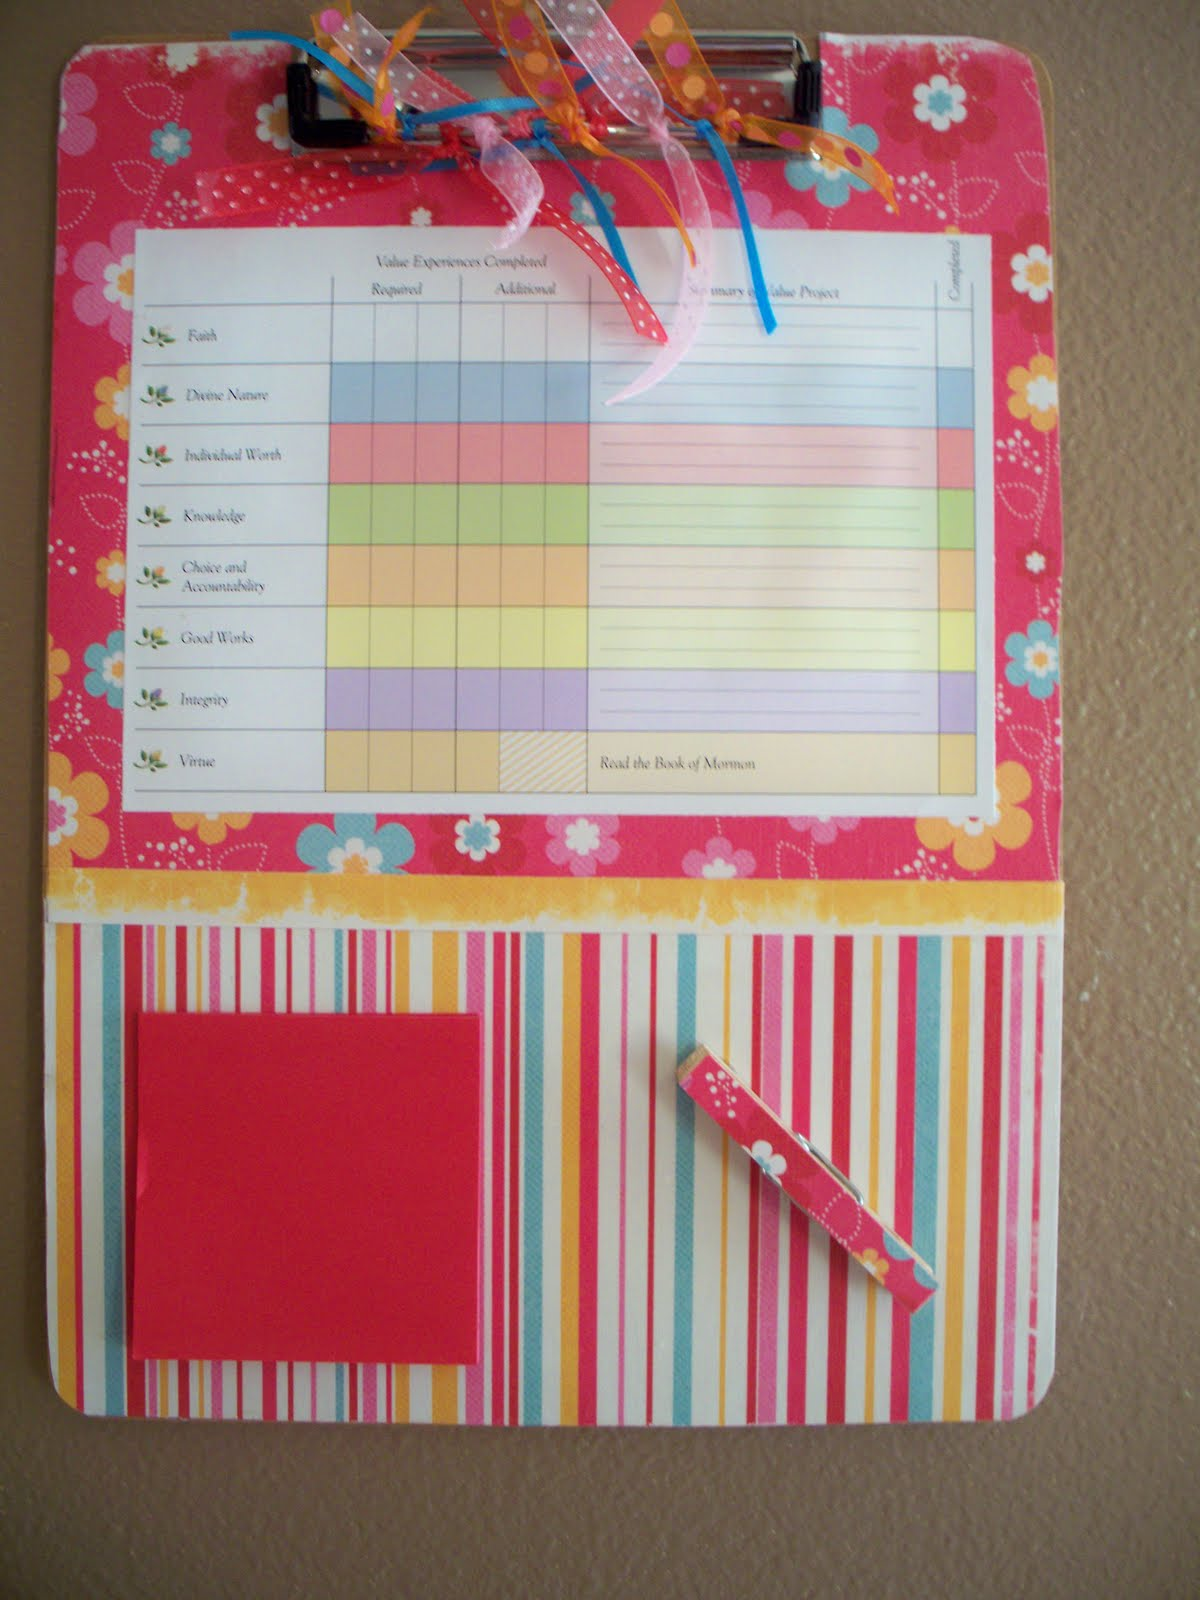 Yw scrapbook paper - Yw Personal Progress Tracker